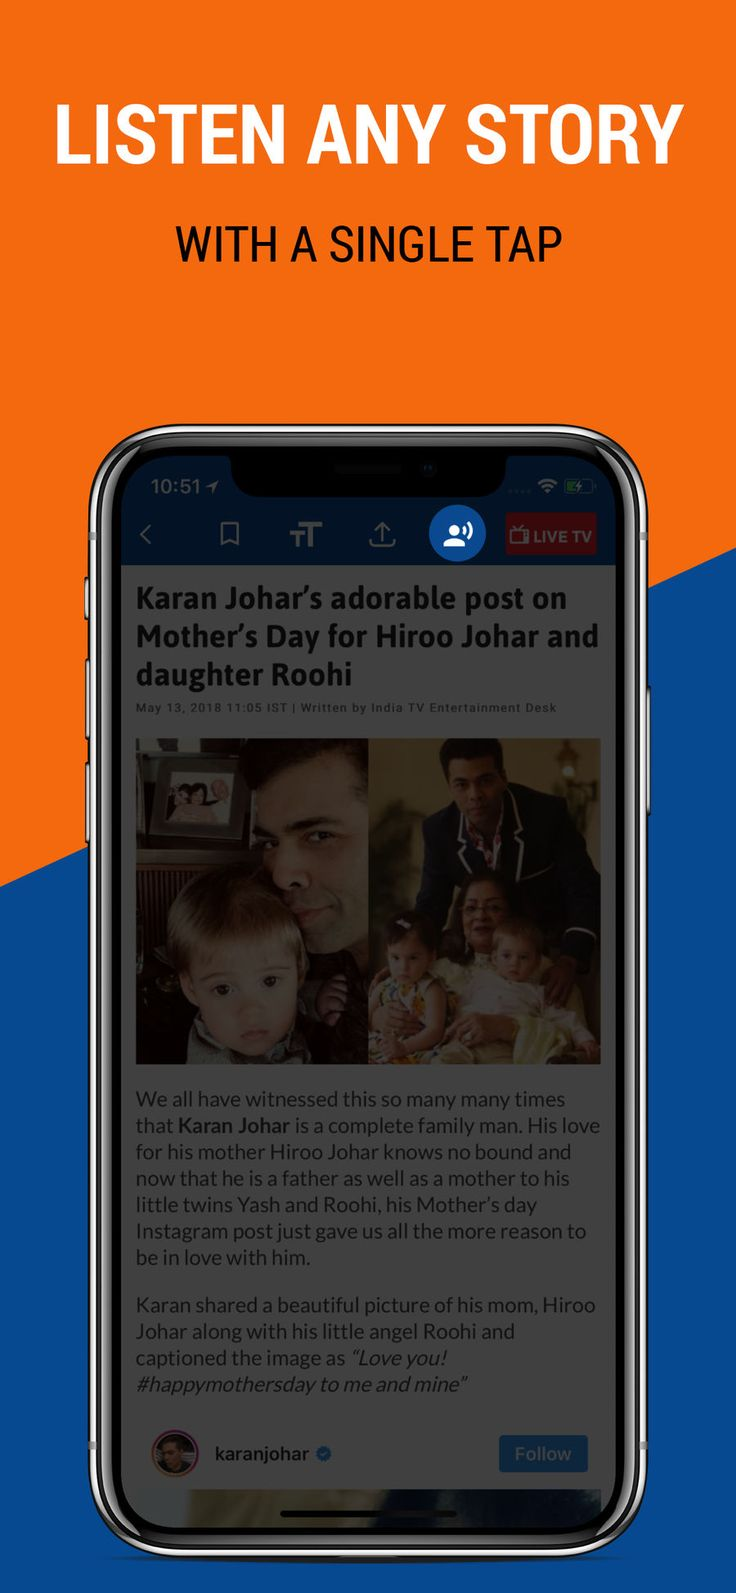 IndiaTV NewsLimitedappsios Live tv, App, Ios apps